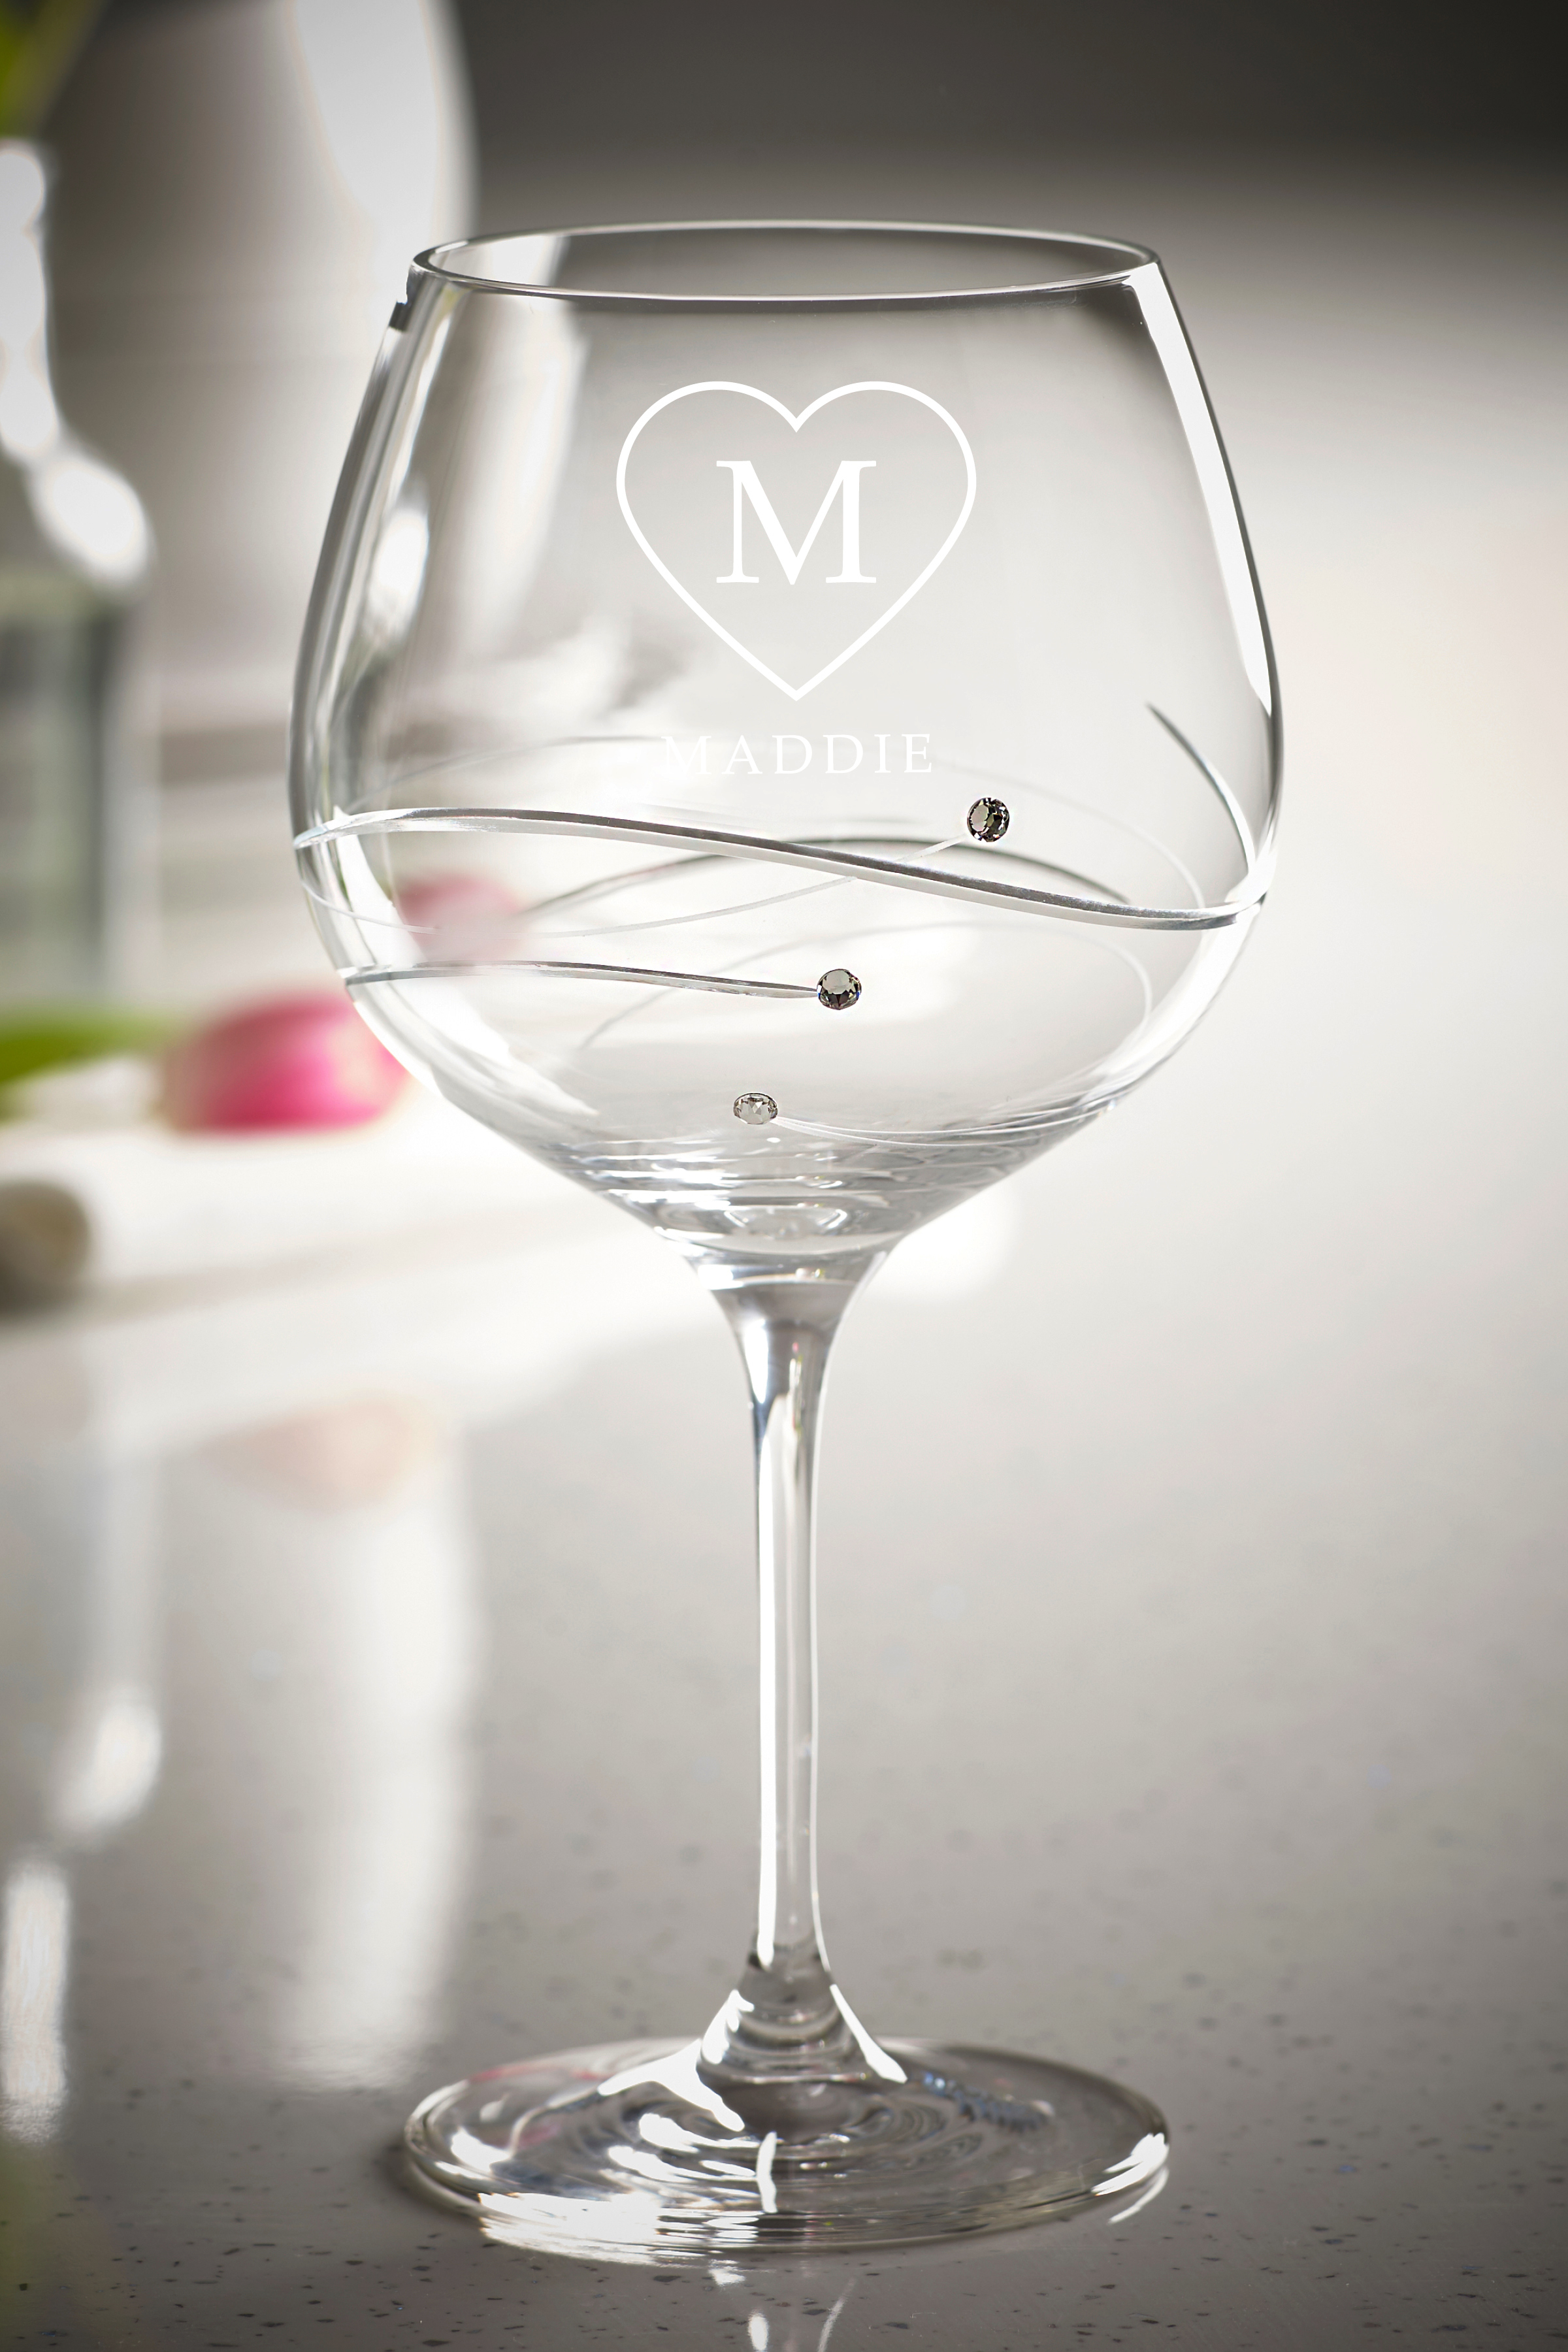 Diamante Gin Glass Initial and Name